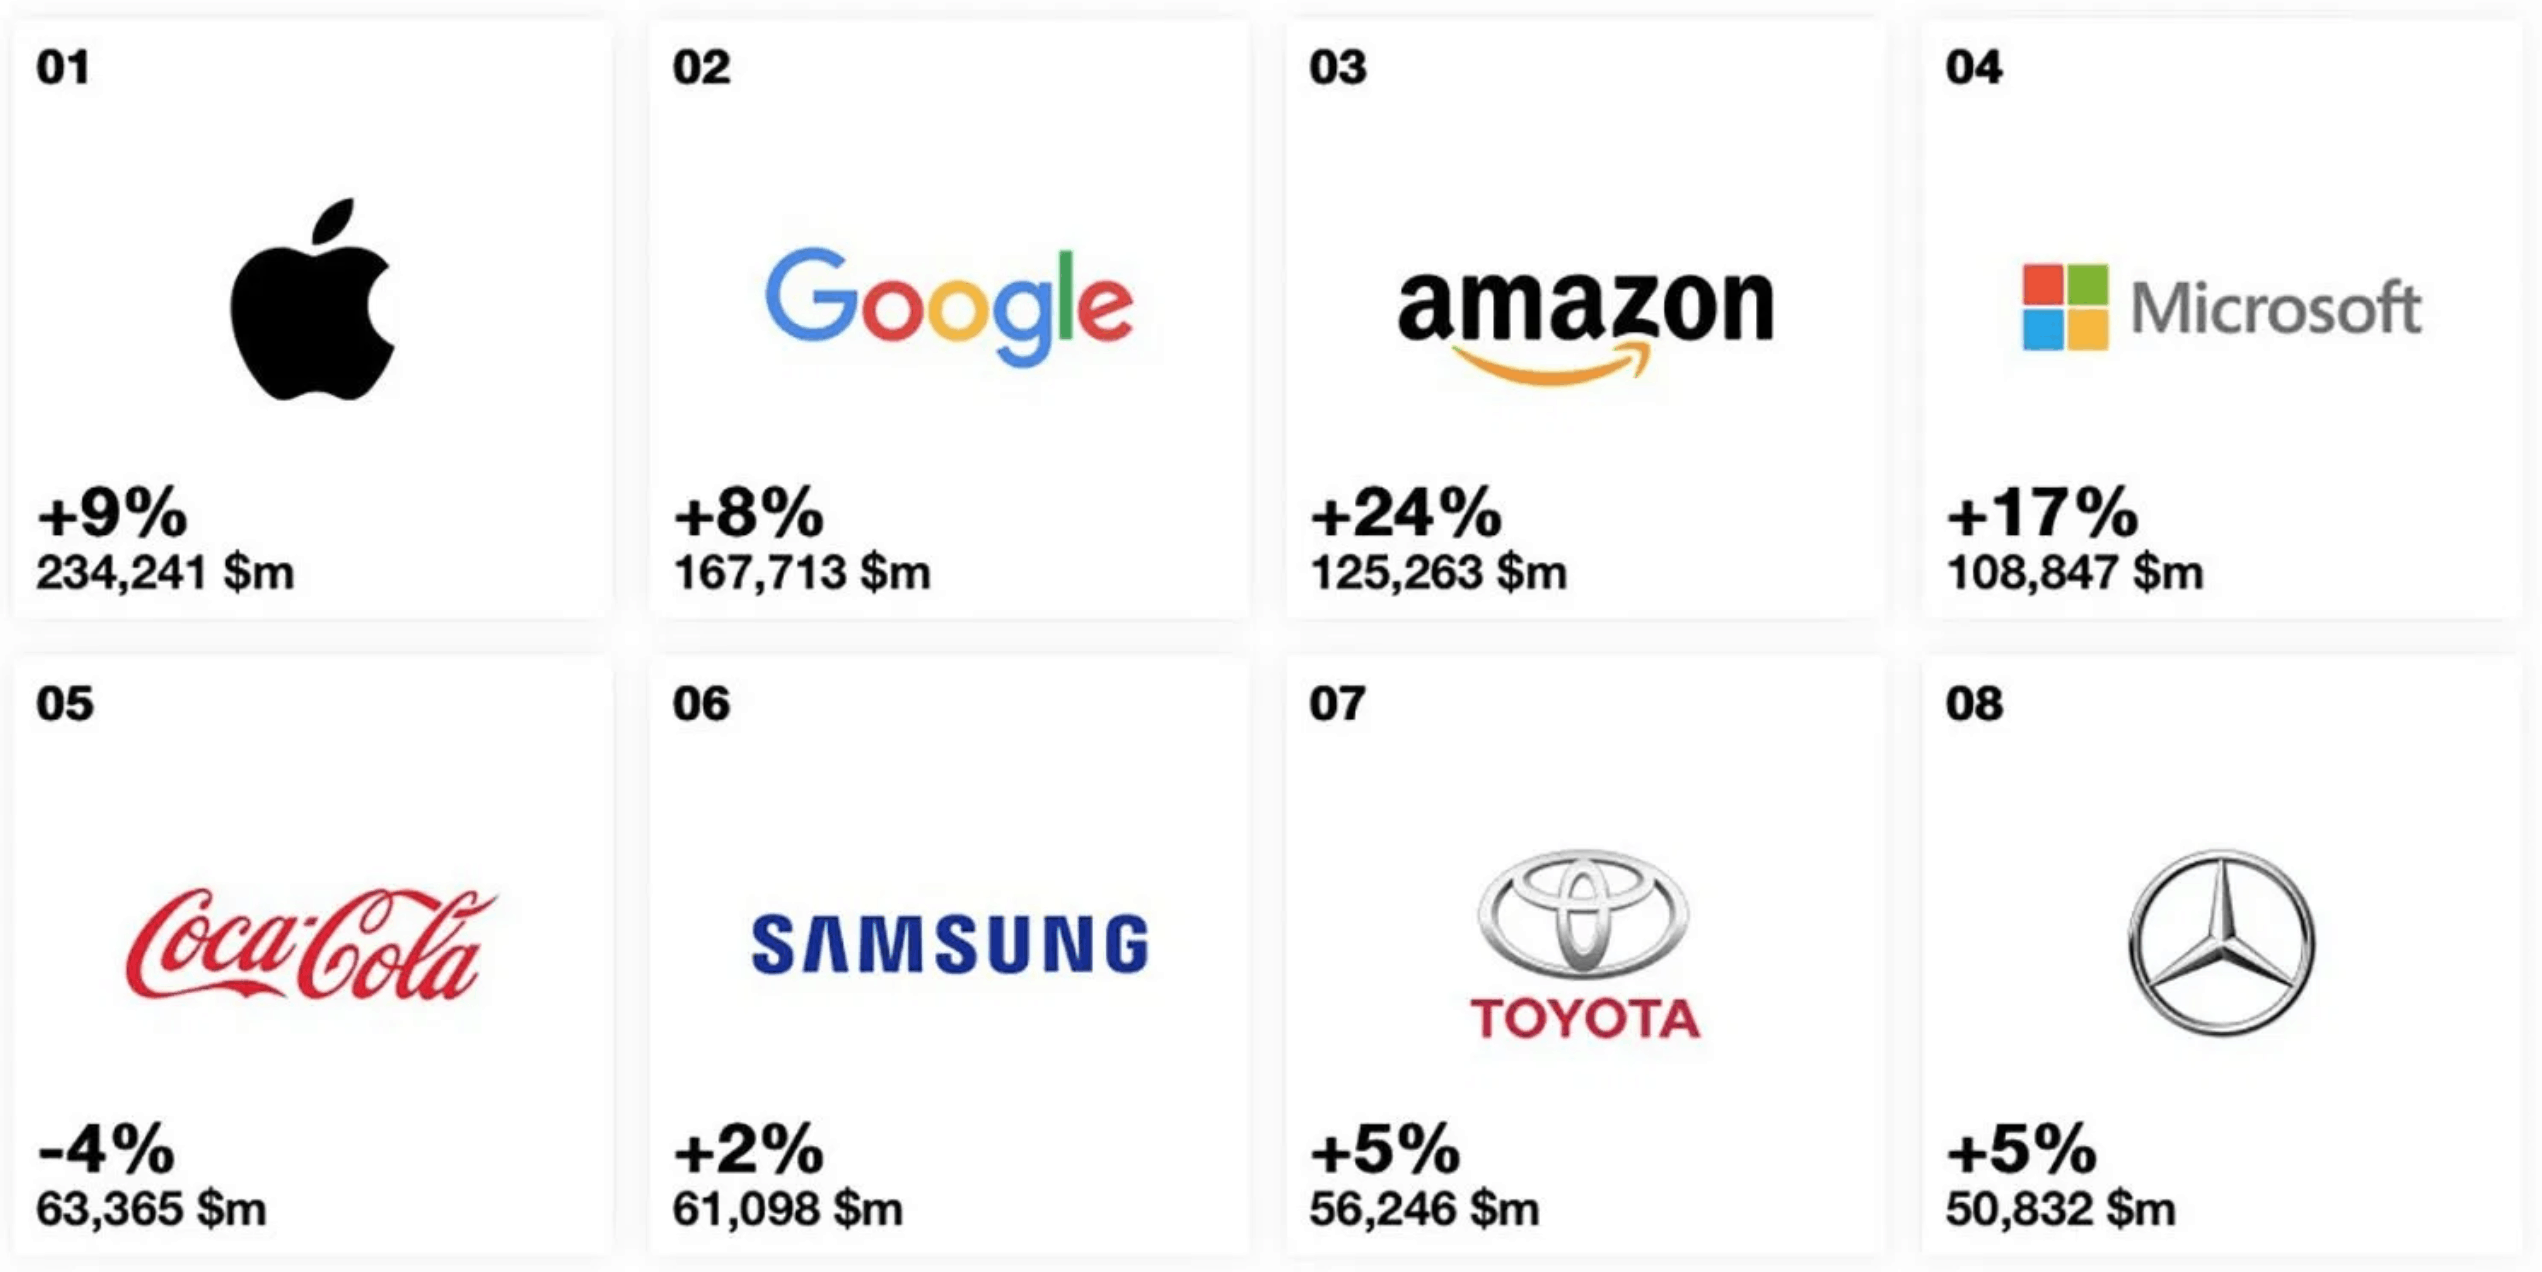 Apple #1 in Brand Value and Has Risen 9%